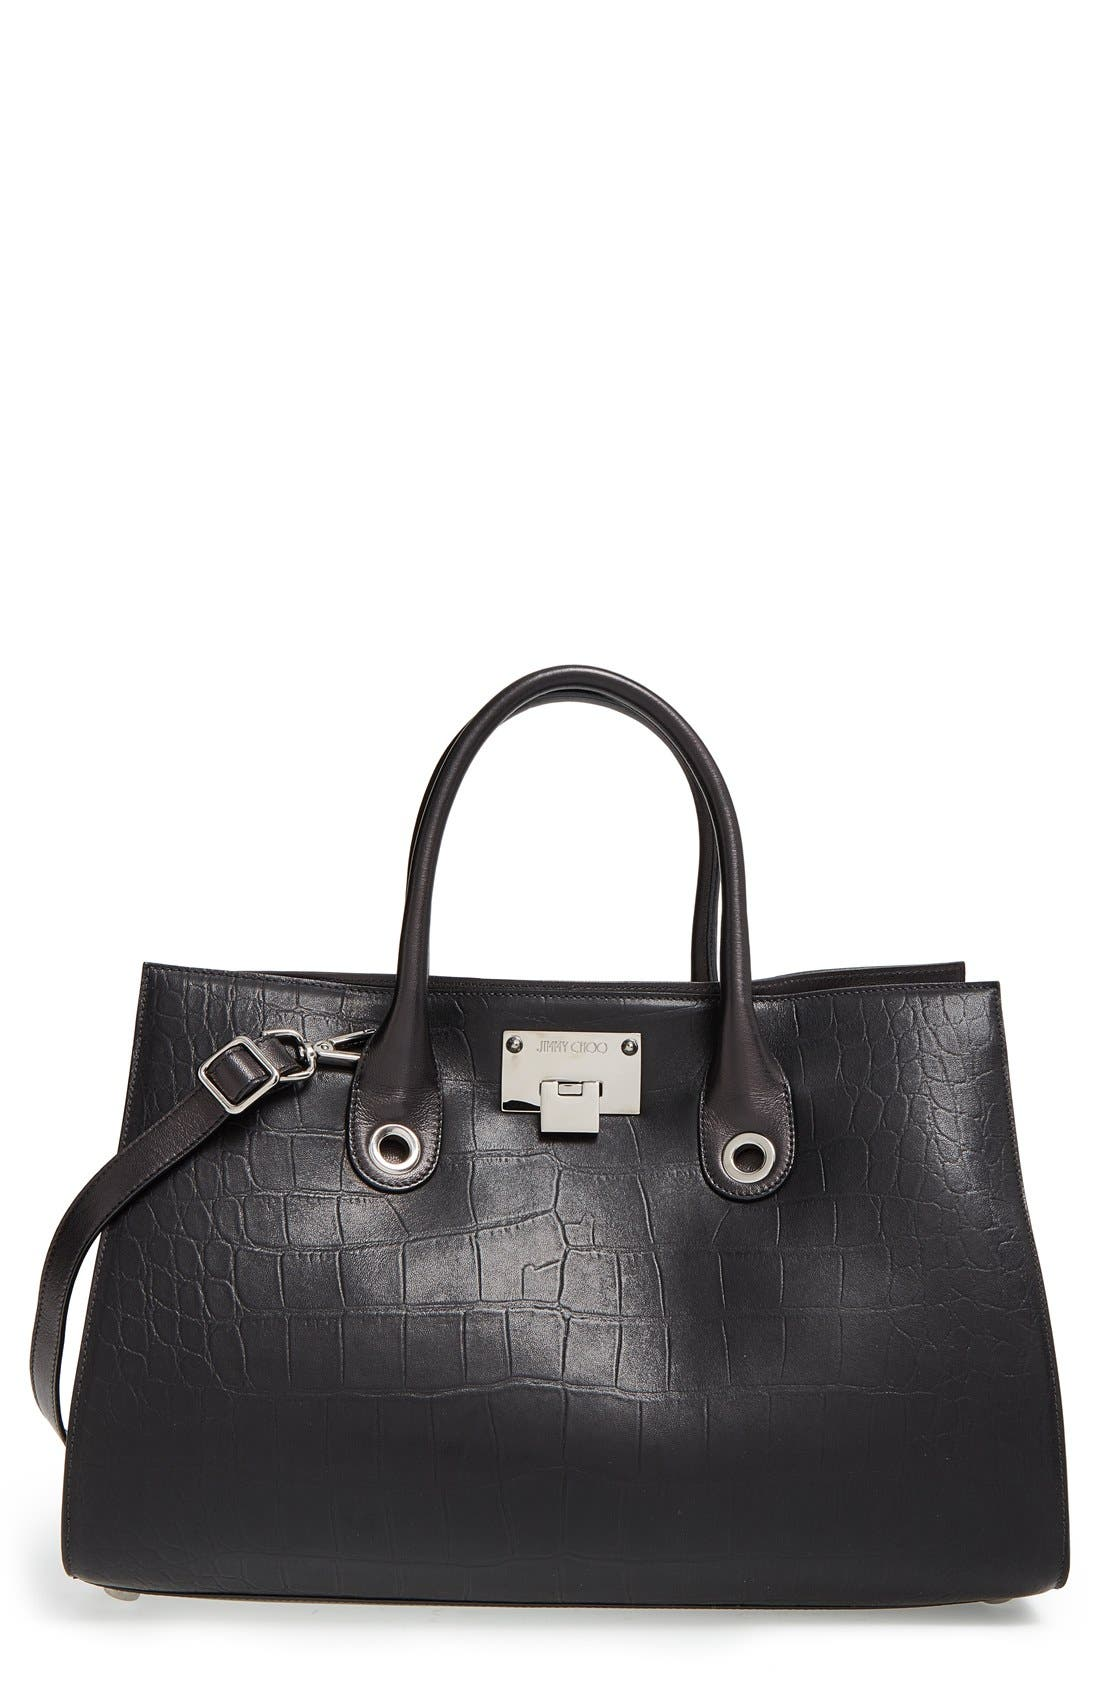 Main Image - Jimmy Choo 'Riley' Leather Tote